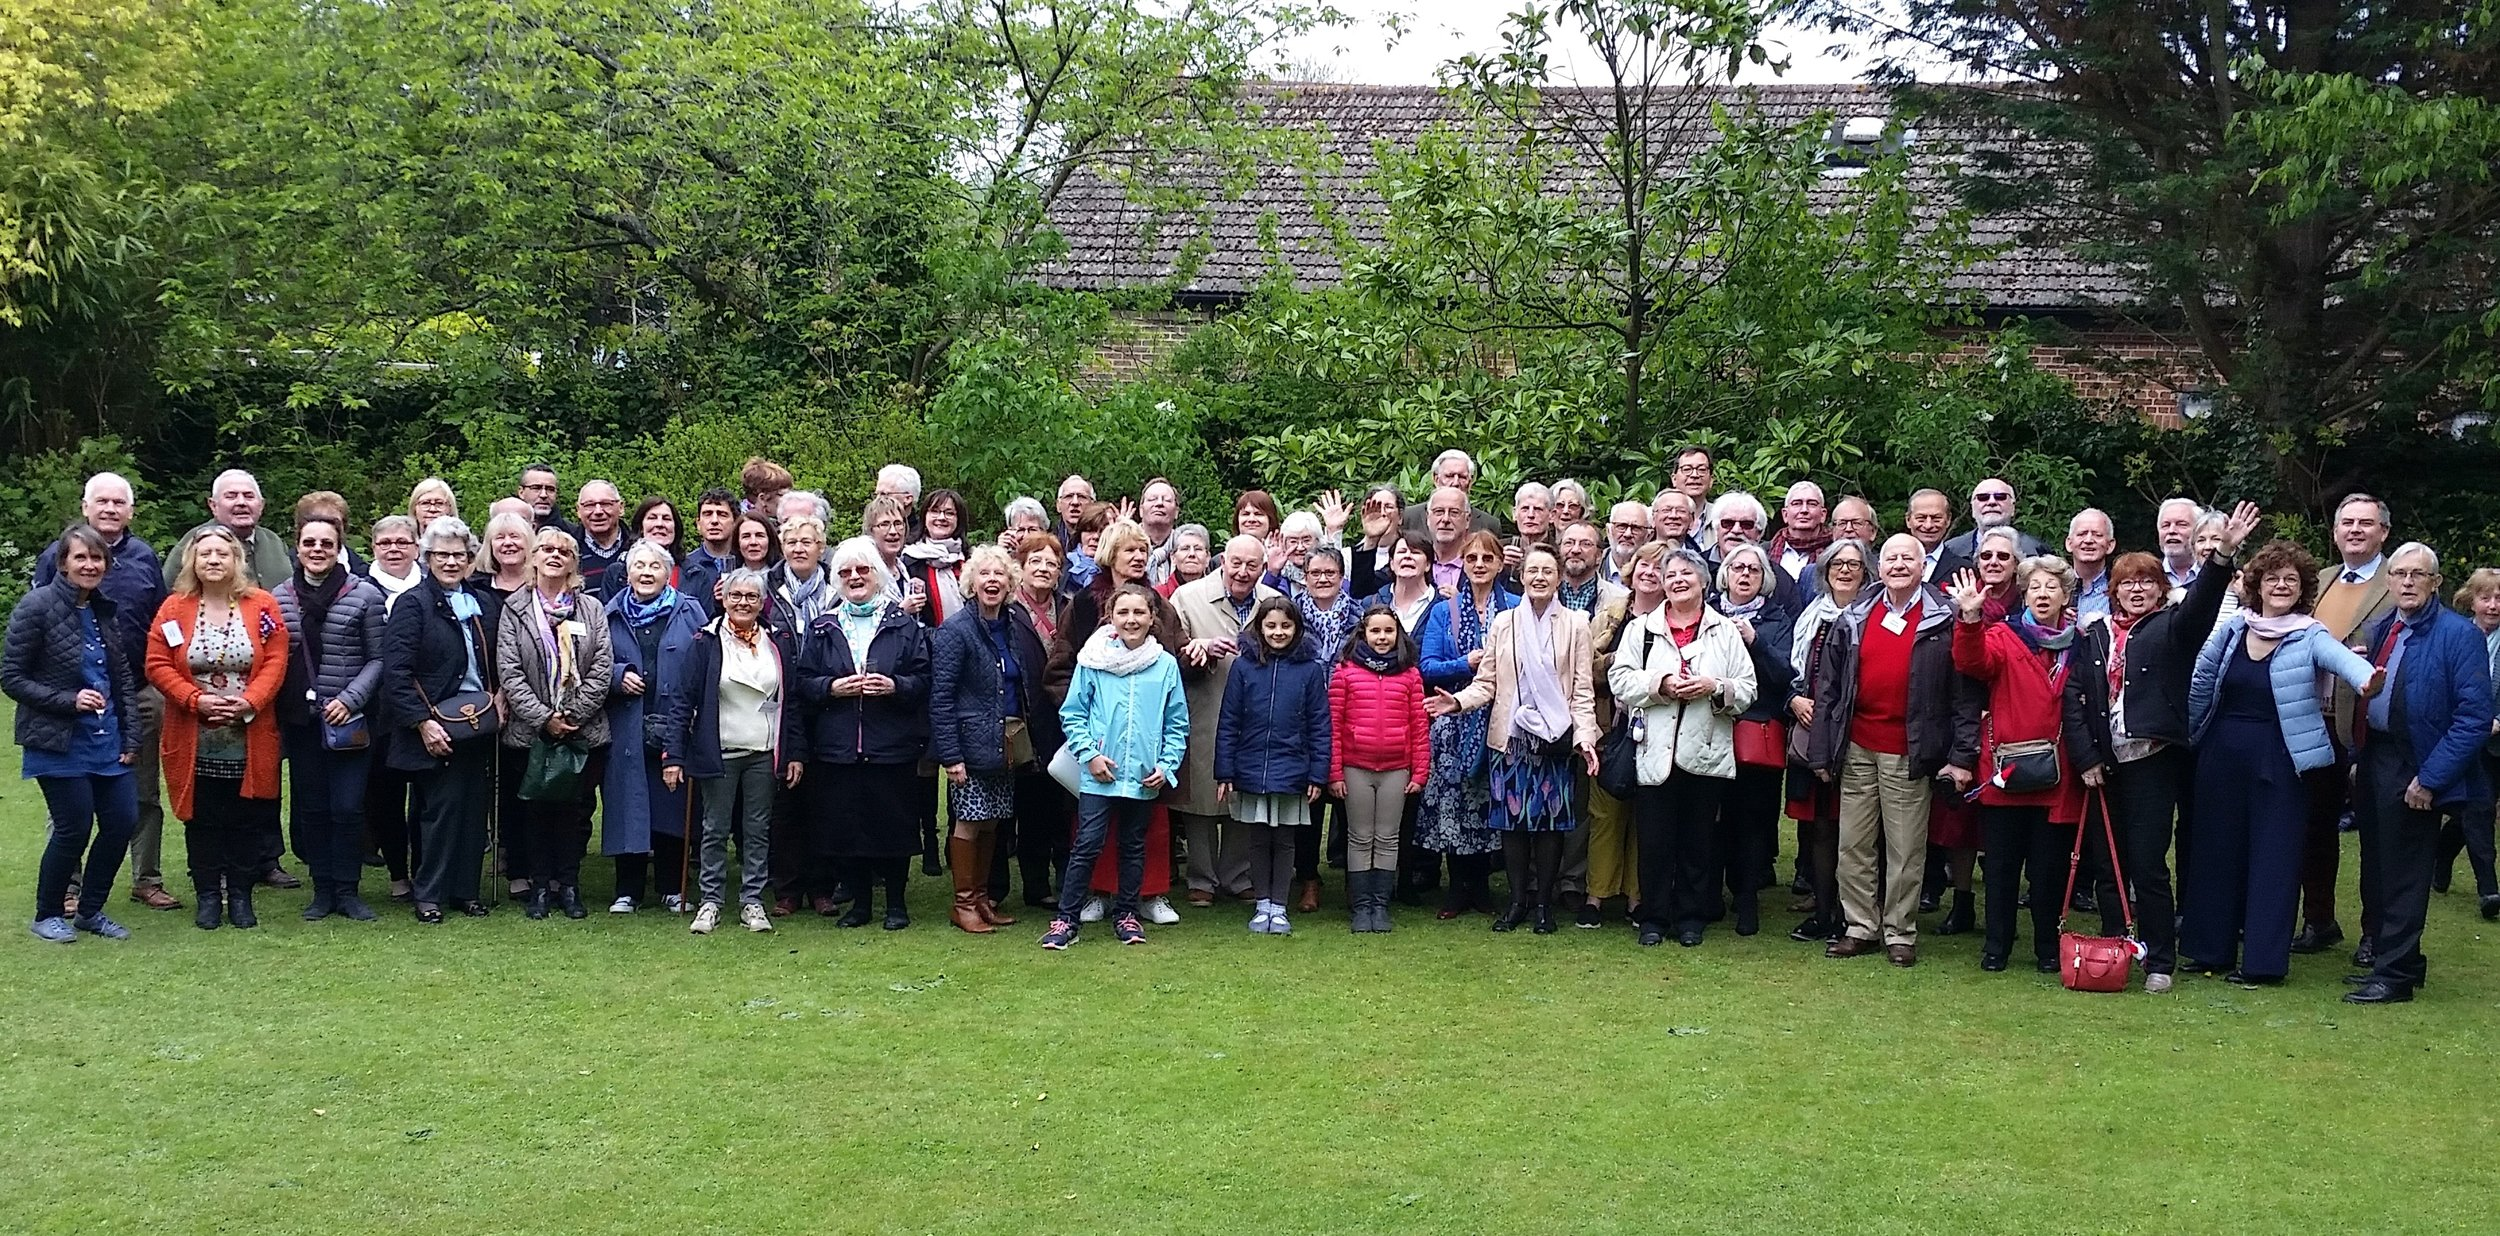 tHE fRENCH AND ENGLISH IN THE rECTORY GARDEN